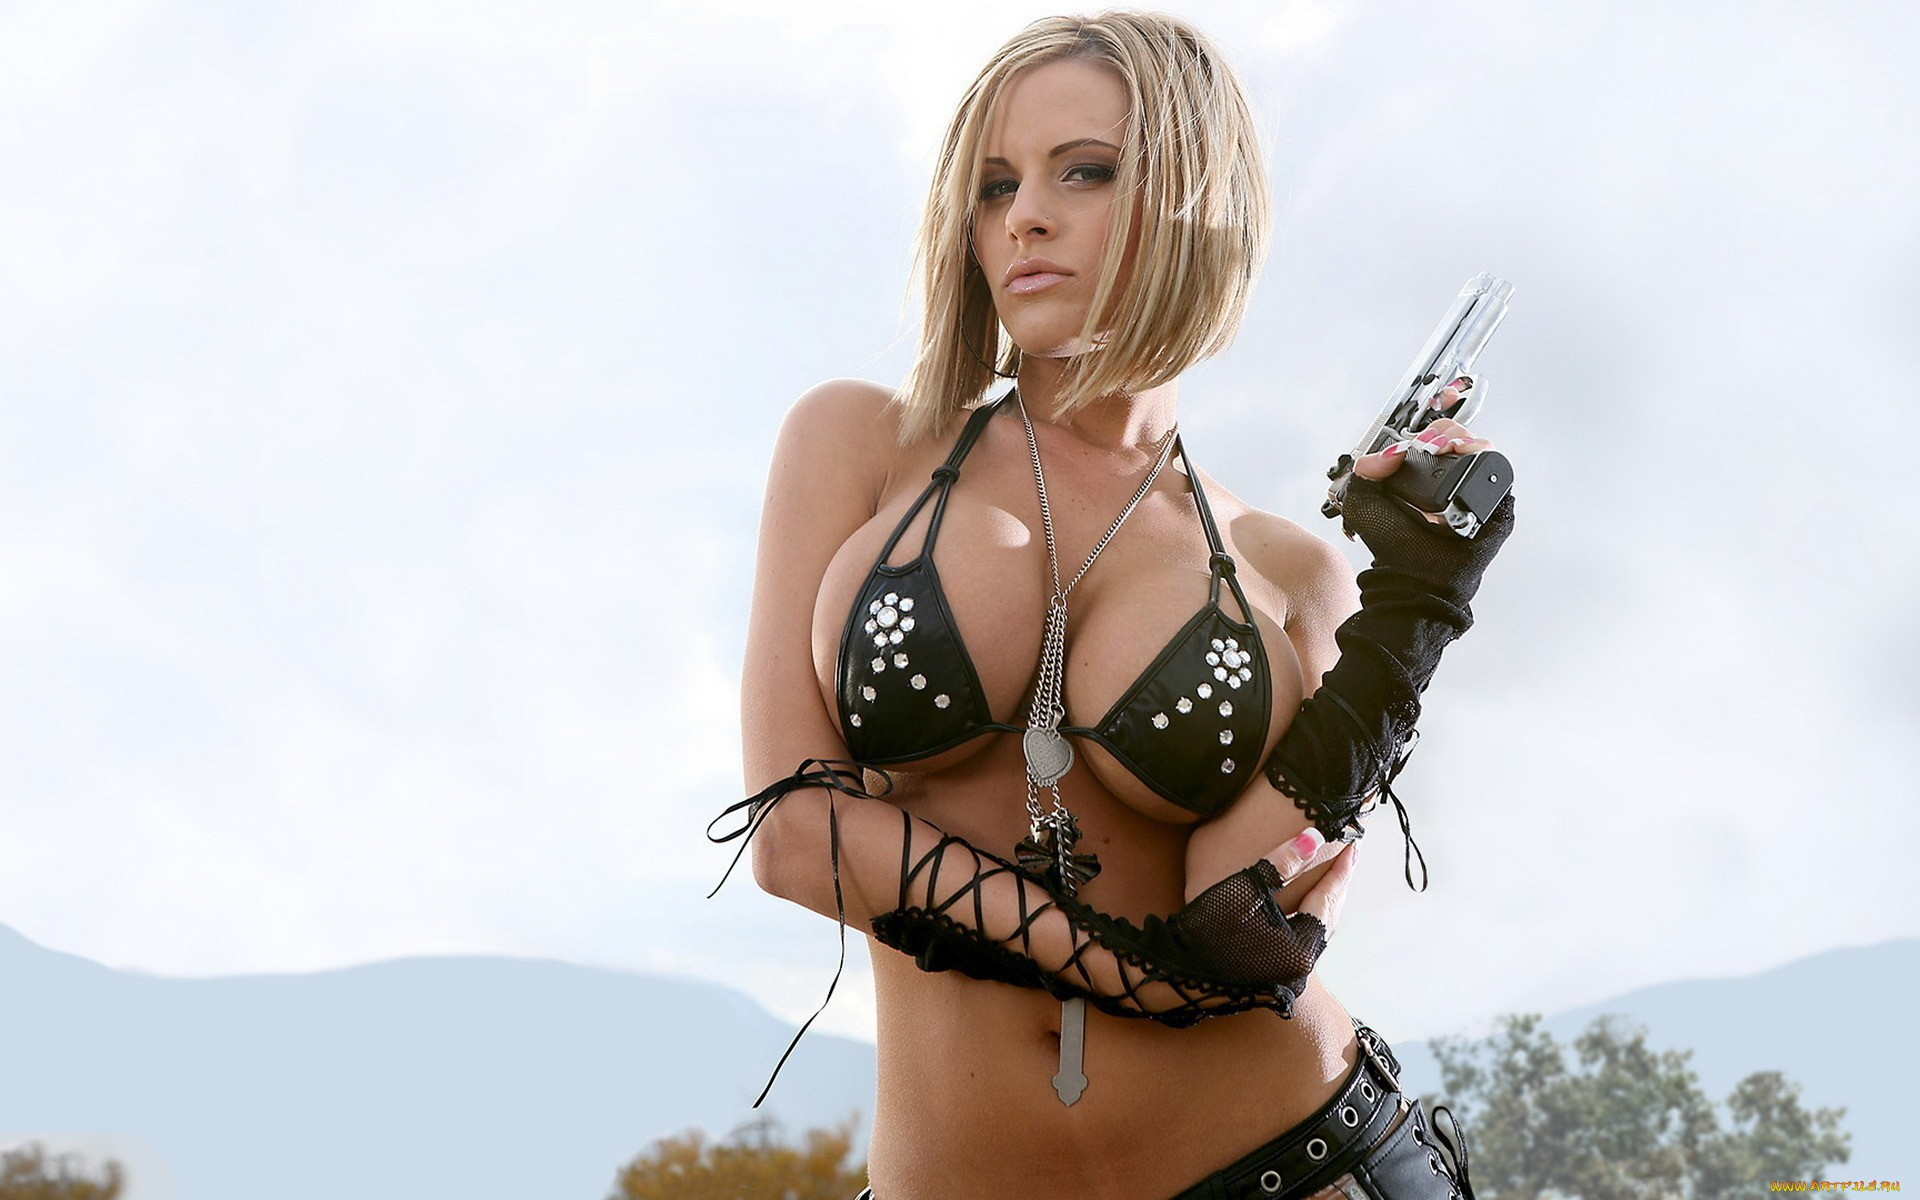 American Model Penny Mathis Lingerie Pictures - Wallpapers